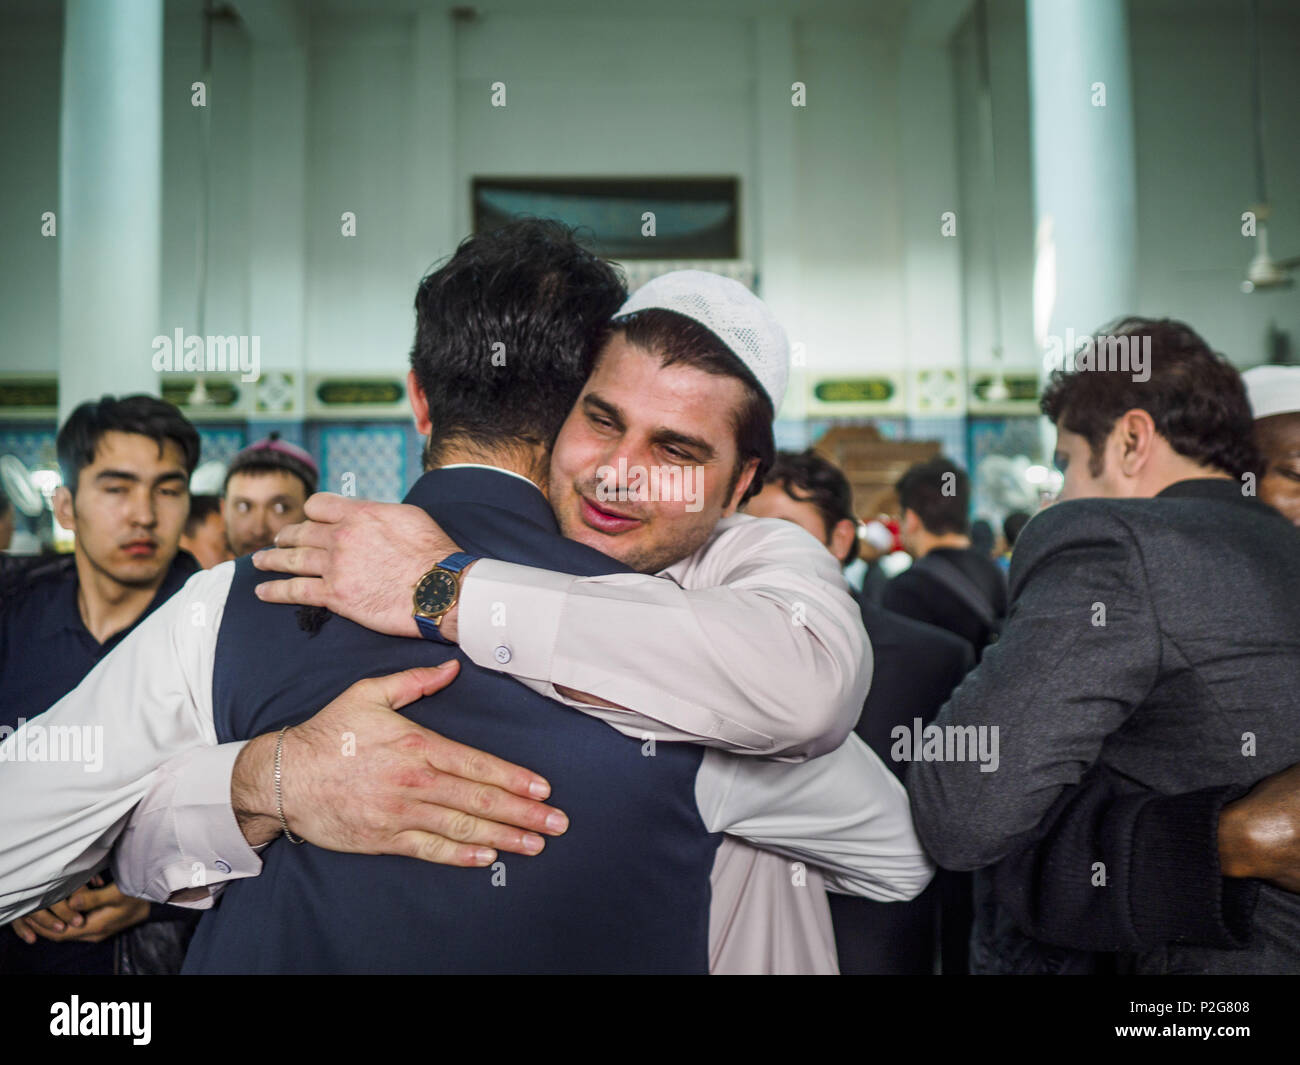 Seoul gyeonggi south korea 15th june 2018 men greet each other seoul gyeonggi south korea 15th june 2018 men greet each other after eid al fitr services at seoul central mosque on eid al fitr the muslim holy day m4hsunfo